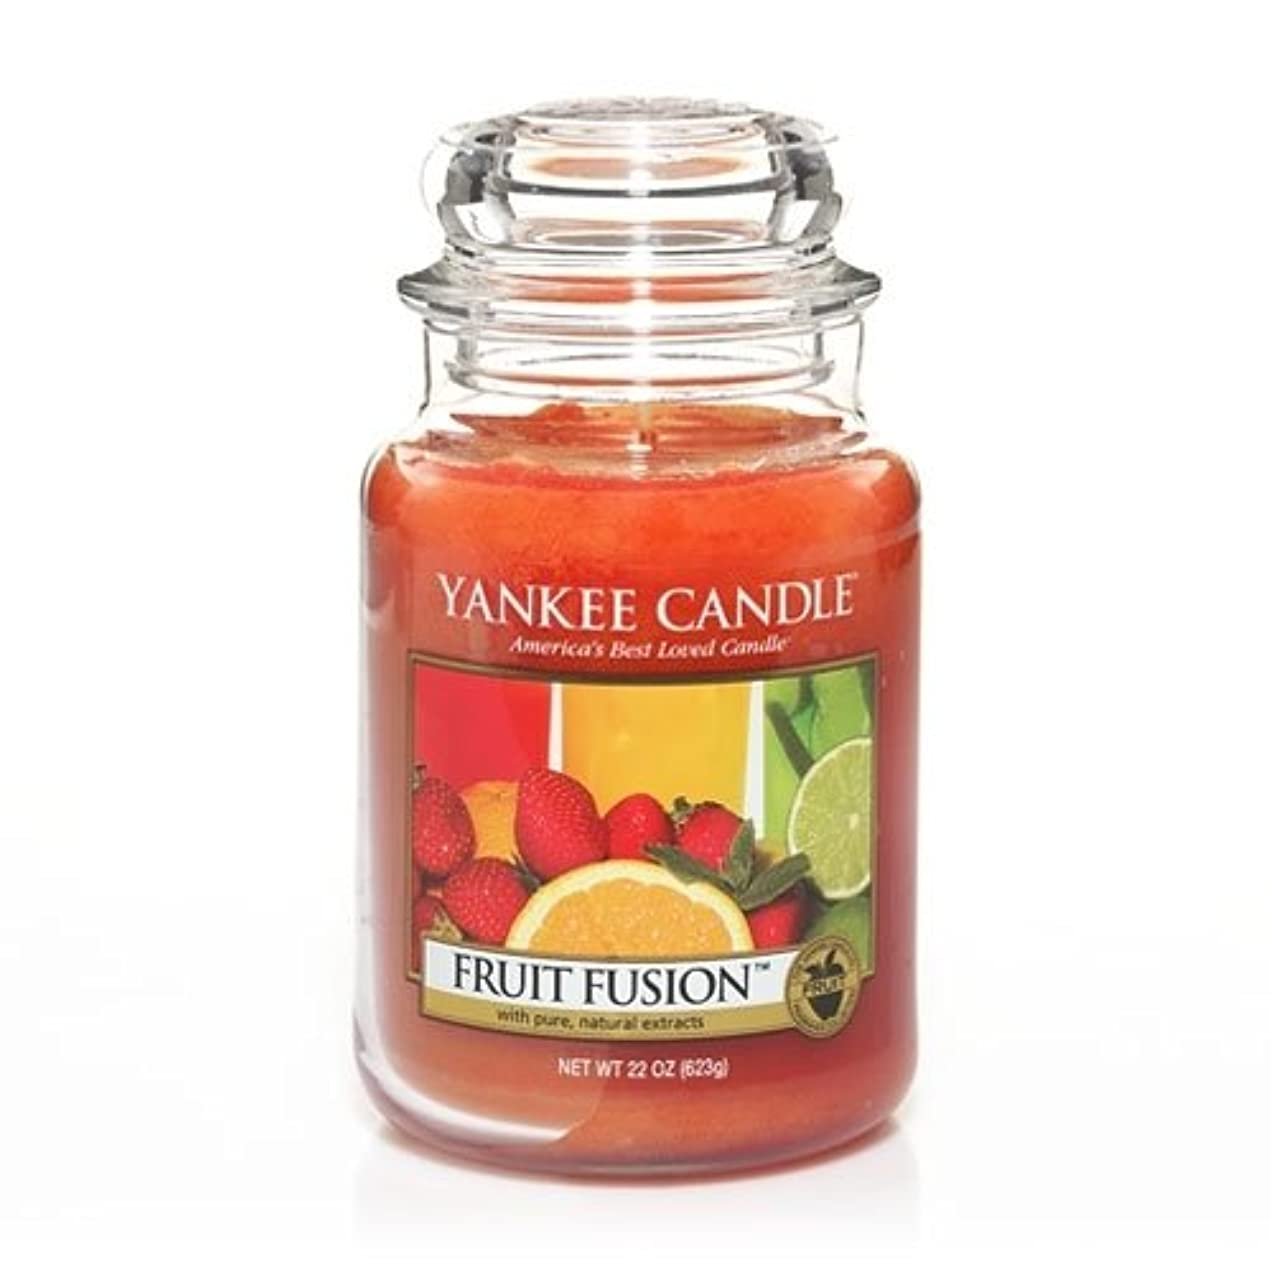 Yankee Candle Fruit Fusion、フルーツ香り Large Jar Candles オレンジ 1230712-YC